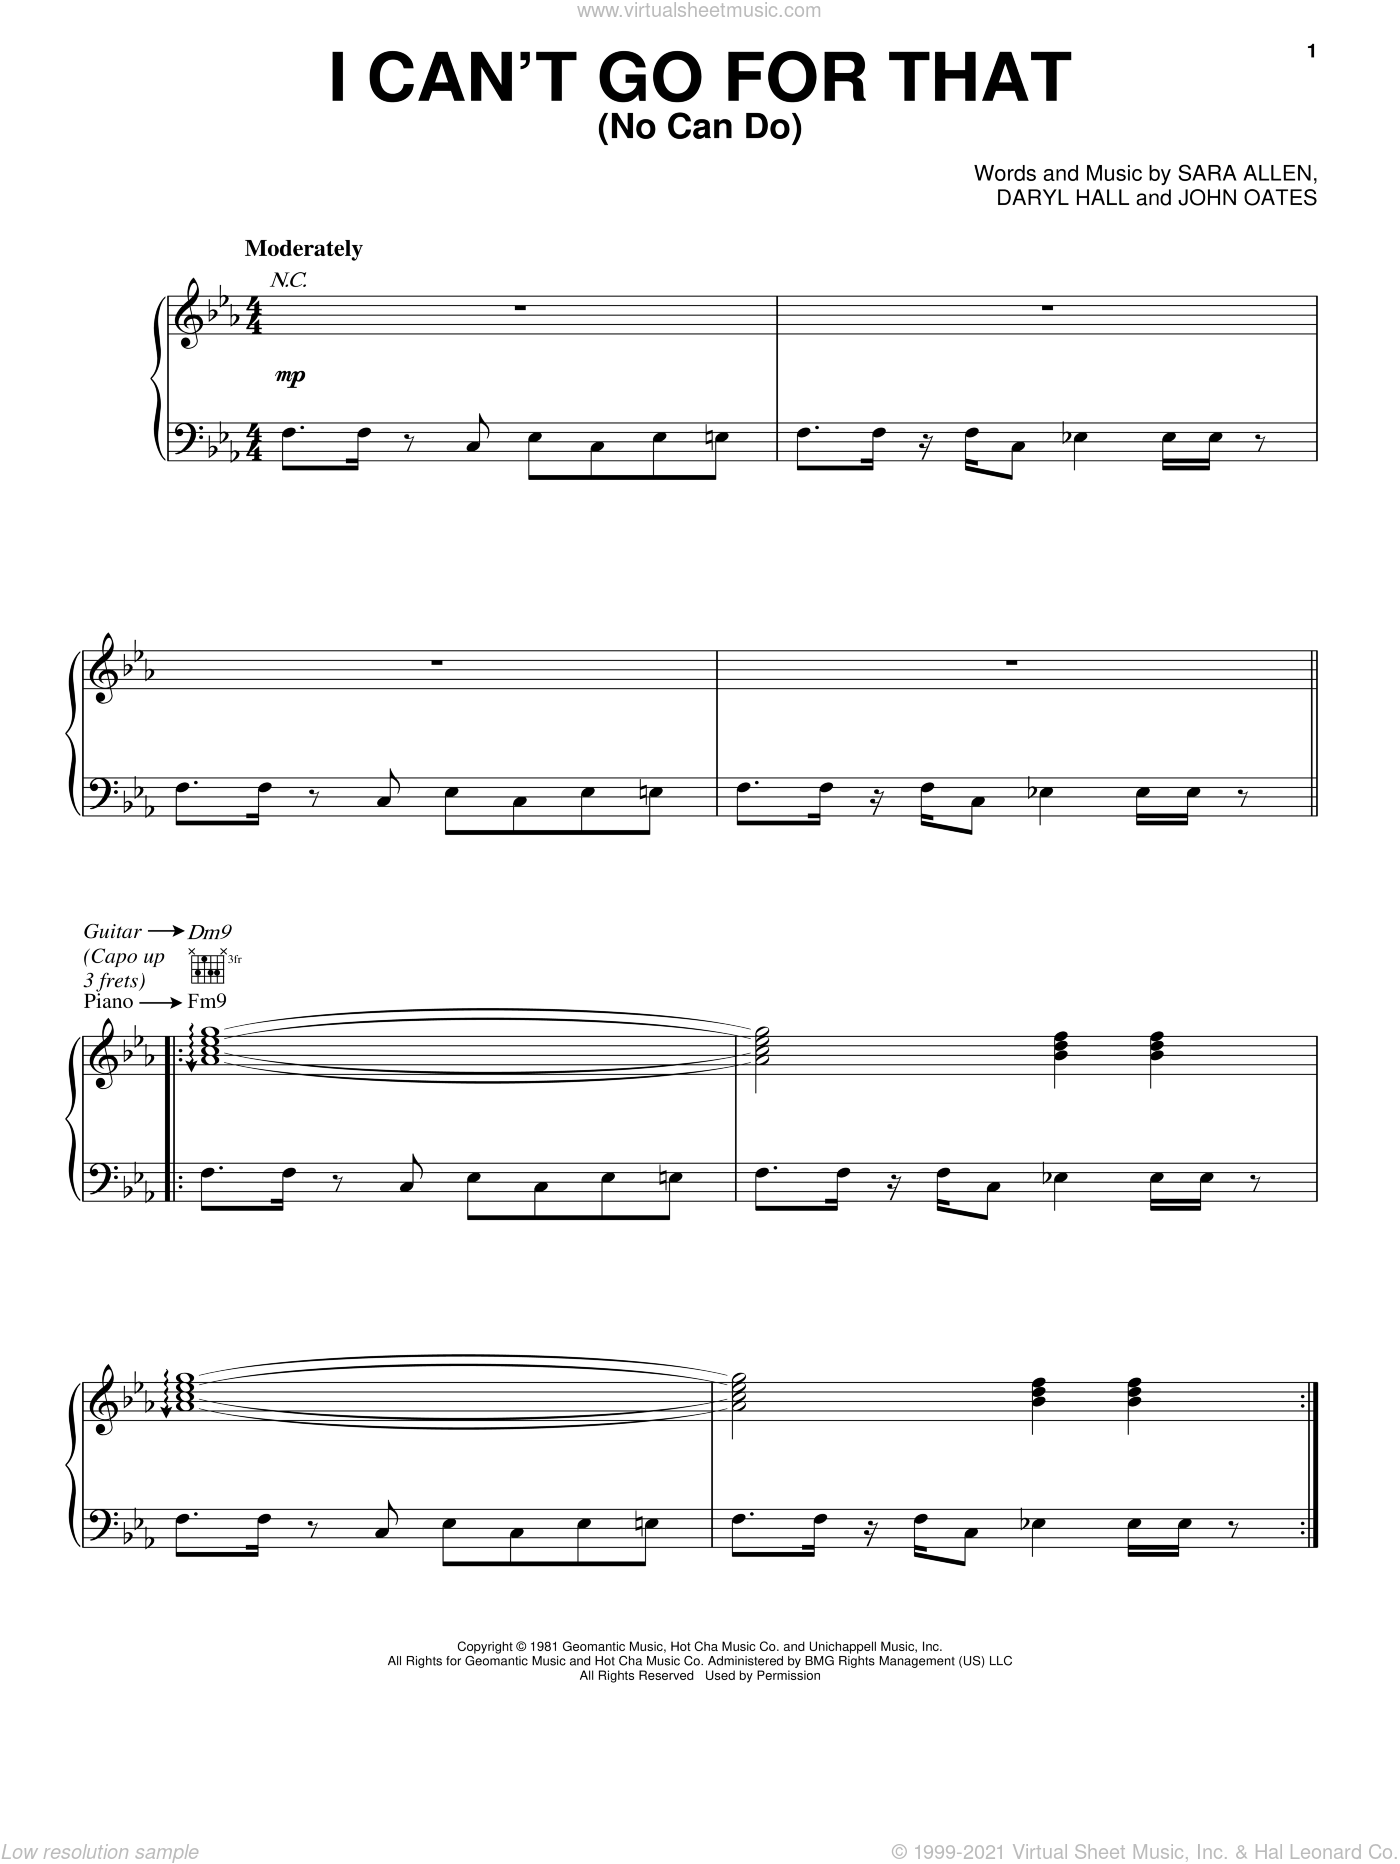 I Can't Go For That sheet music for voice, piano or guitar by Sara Allen, Hall and Oates, Daryl Hall and John Oates. Score Image Preview.